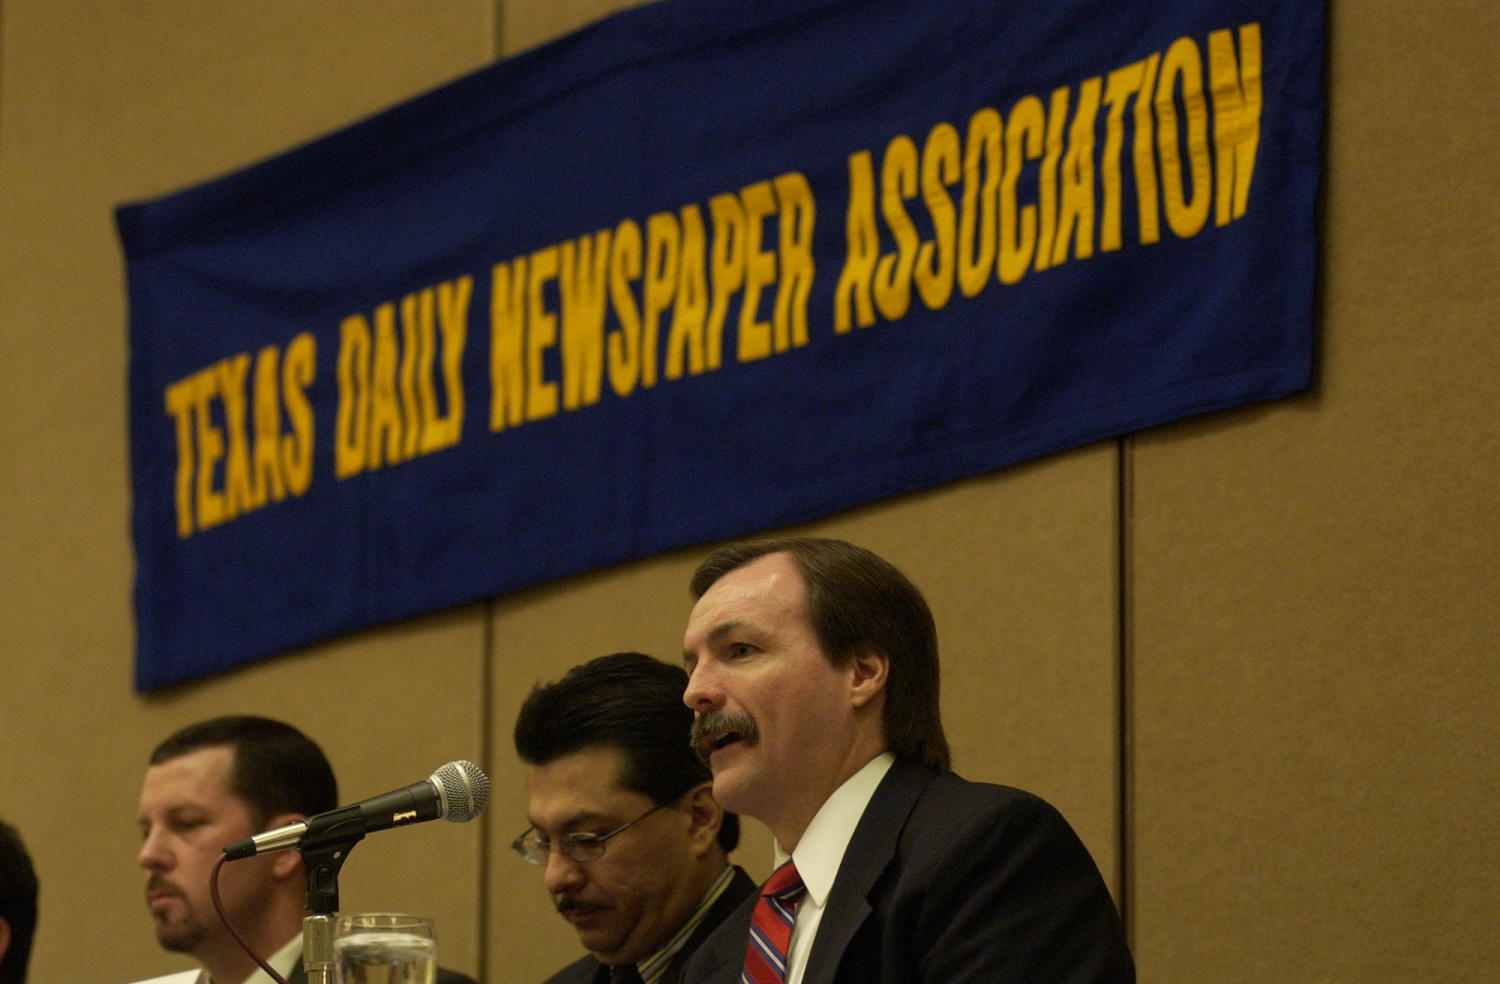 [Gene Haddock, Lorenzo Vigliante and Lane Aten], Photograph of (L-R) Gene Haddock, Lorenzo Vigliante and Lane Aten in attendance at the 2004 Texas Daily News Association annual conference held in Corpus Christi. All three men are seen seated behind a table and in front of a microphones as they are guest speakers at the conference.,